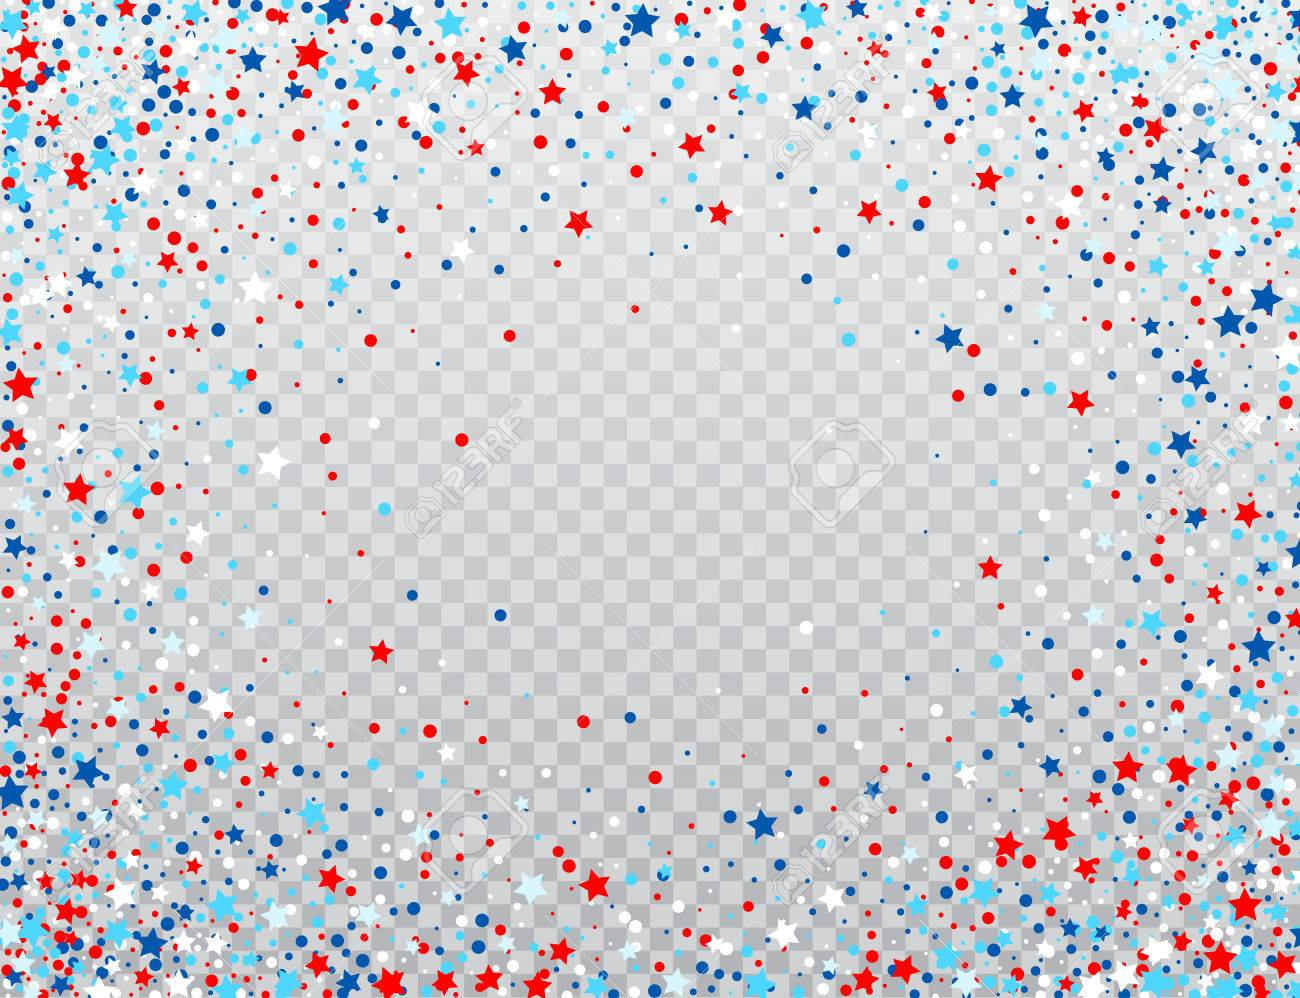 USA celebration confetti stars in national colors for American independence day isolated on background. Vector illustration - 77438235